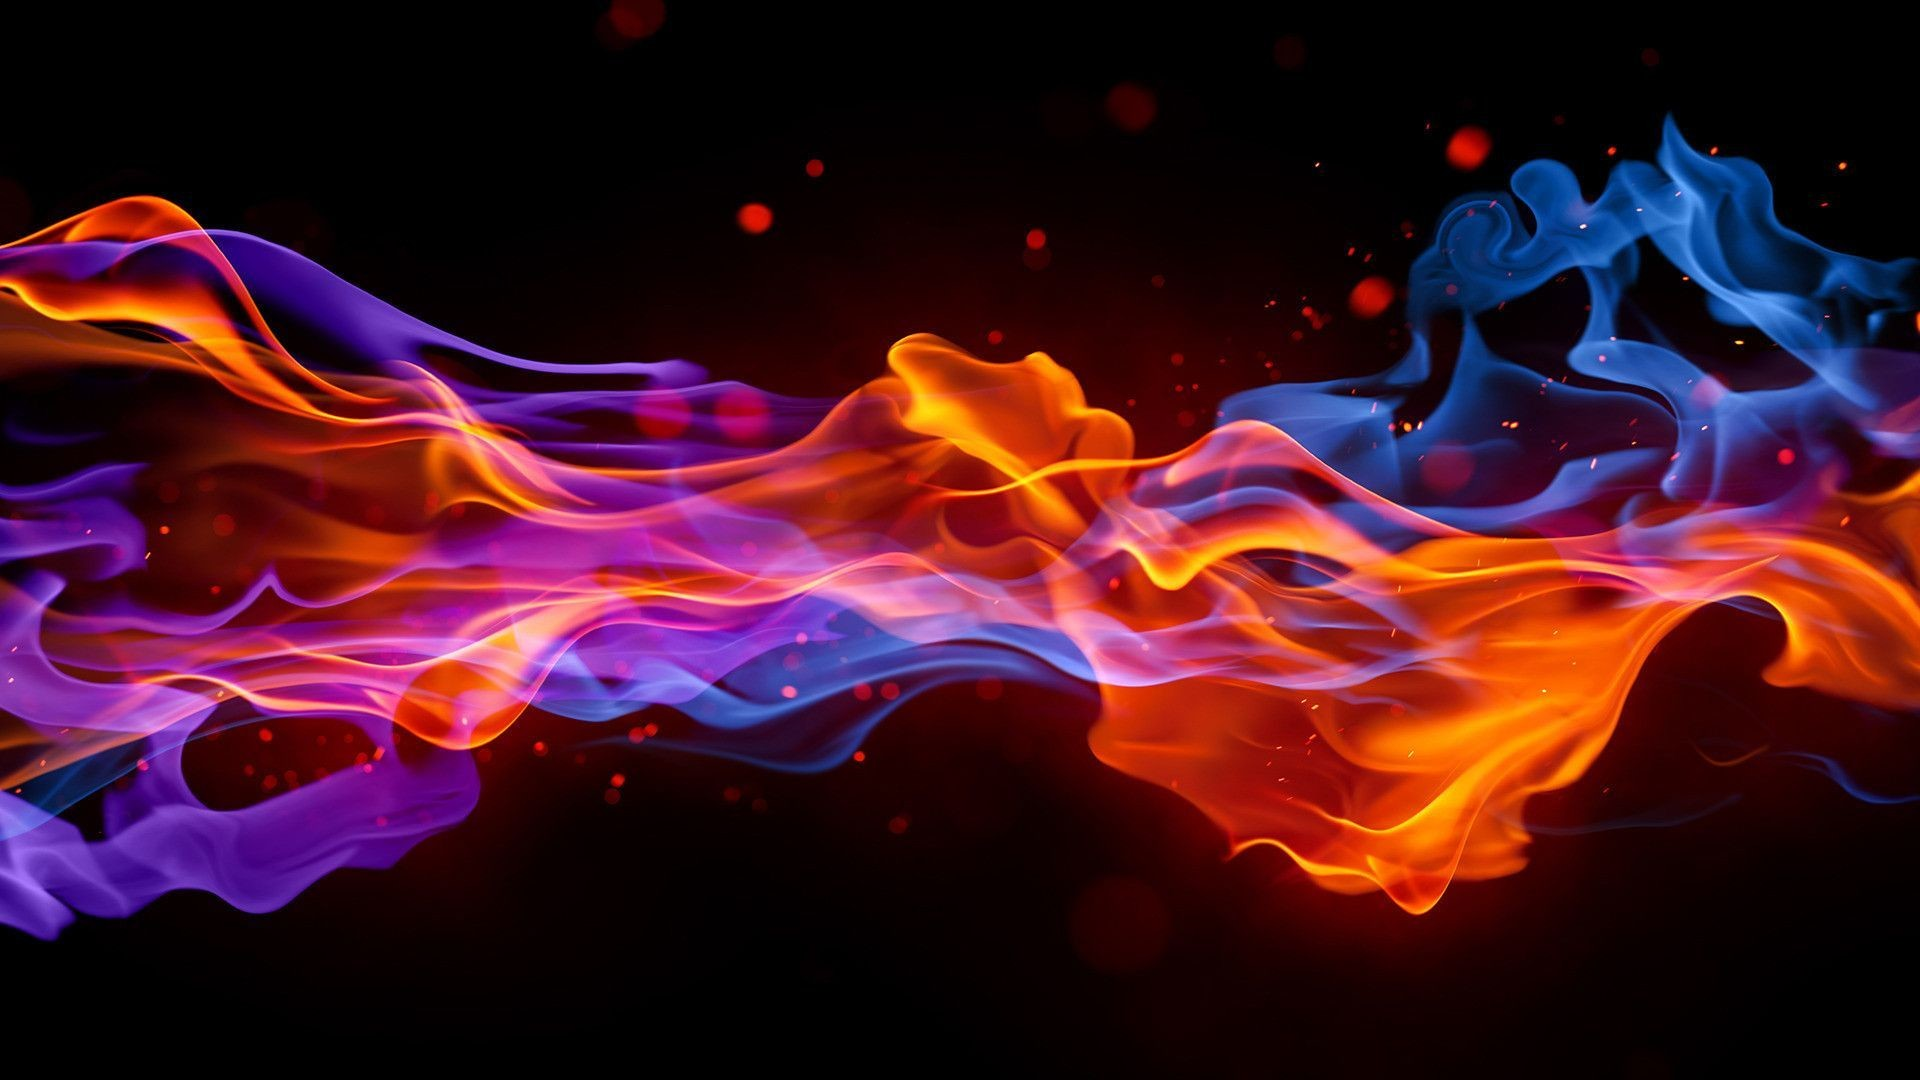 Cool Blue Fire Wallpapers ①